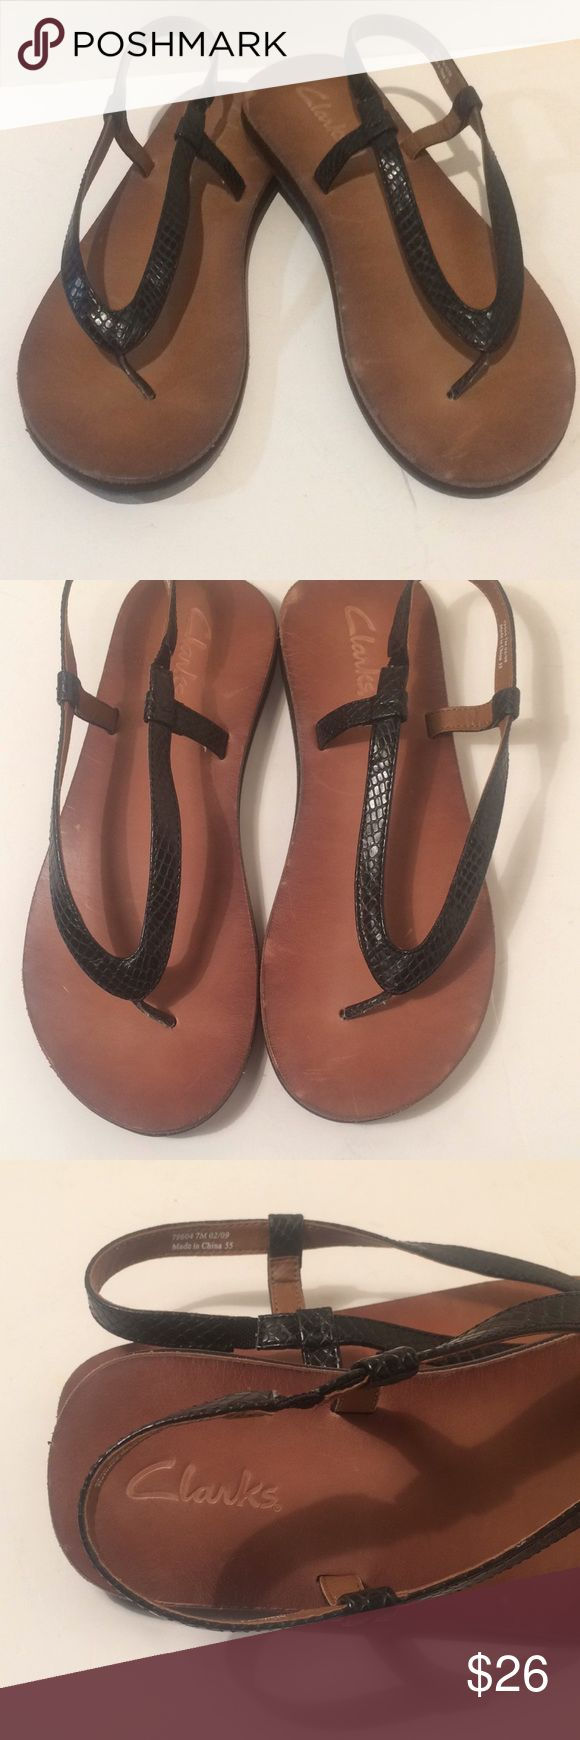 Clarks sandals shoes slip on no buckle thongs Clarks  Super cute for summer or your much needed get away!!! Size 7m they do not buckle they have hidden elastic for easy on.  I am a huge clarks / born shoes fanatic and am Doing a huge clean out most of my shoes have only been worn 1-2 times   Open to reasonable offers!! Clarks Shoes Sandals